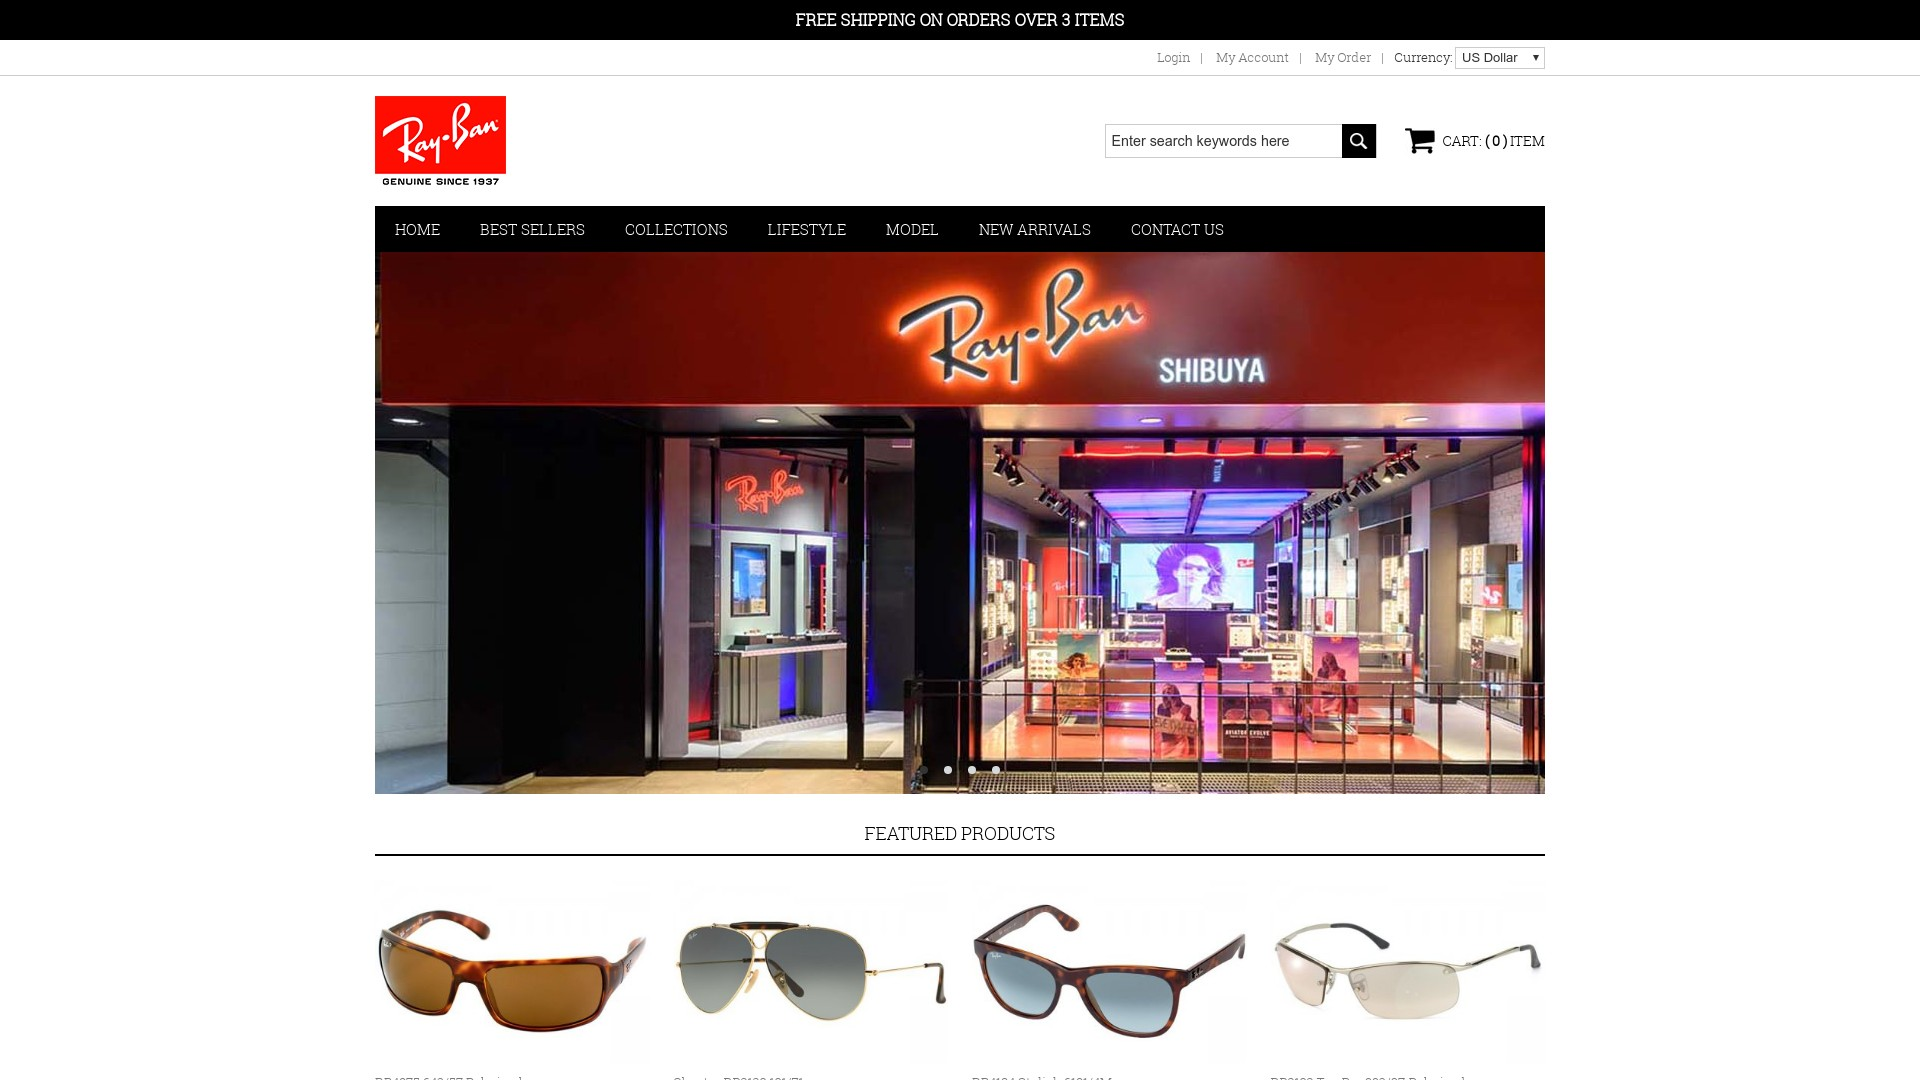 Ray Ban Instagram Scam  Fake Sunglasses Store